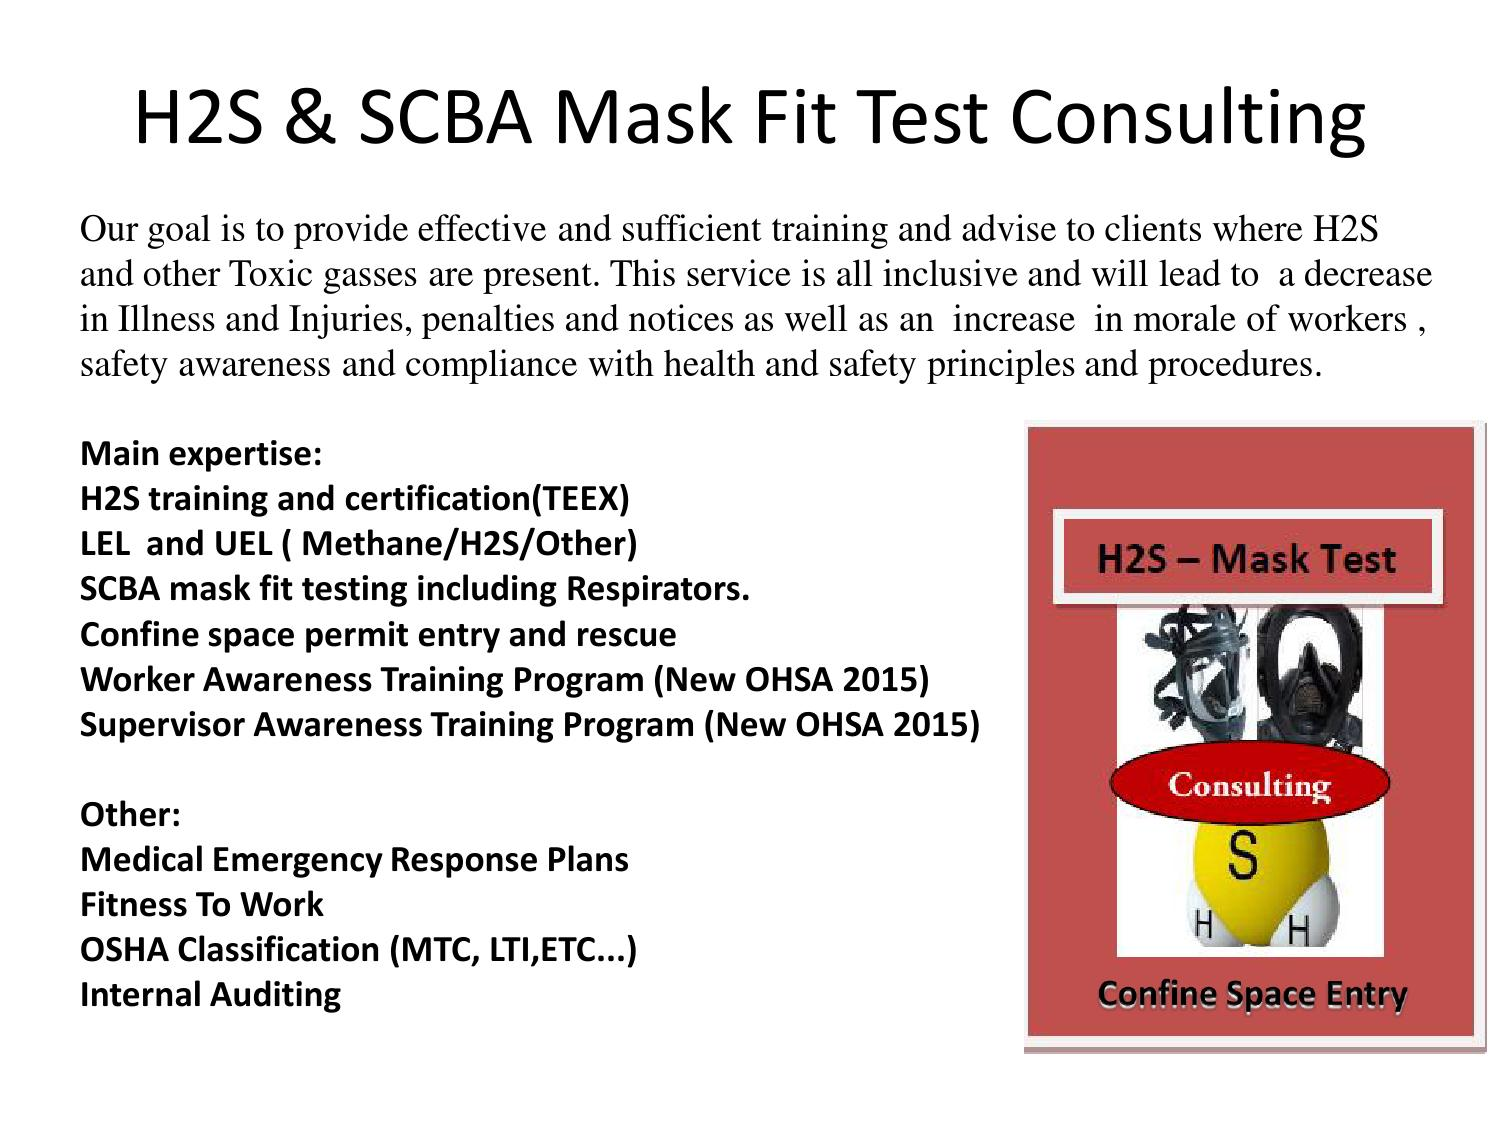 H2s scba mask fit test consulting by josias montgomery issuu 1betcityfo Choice Image